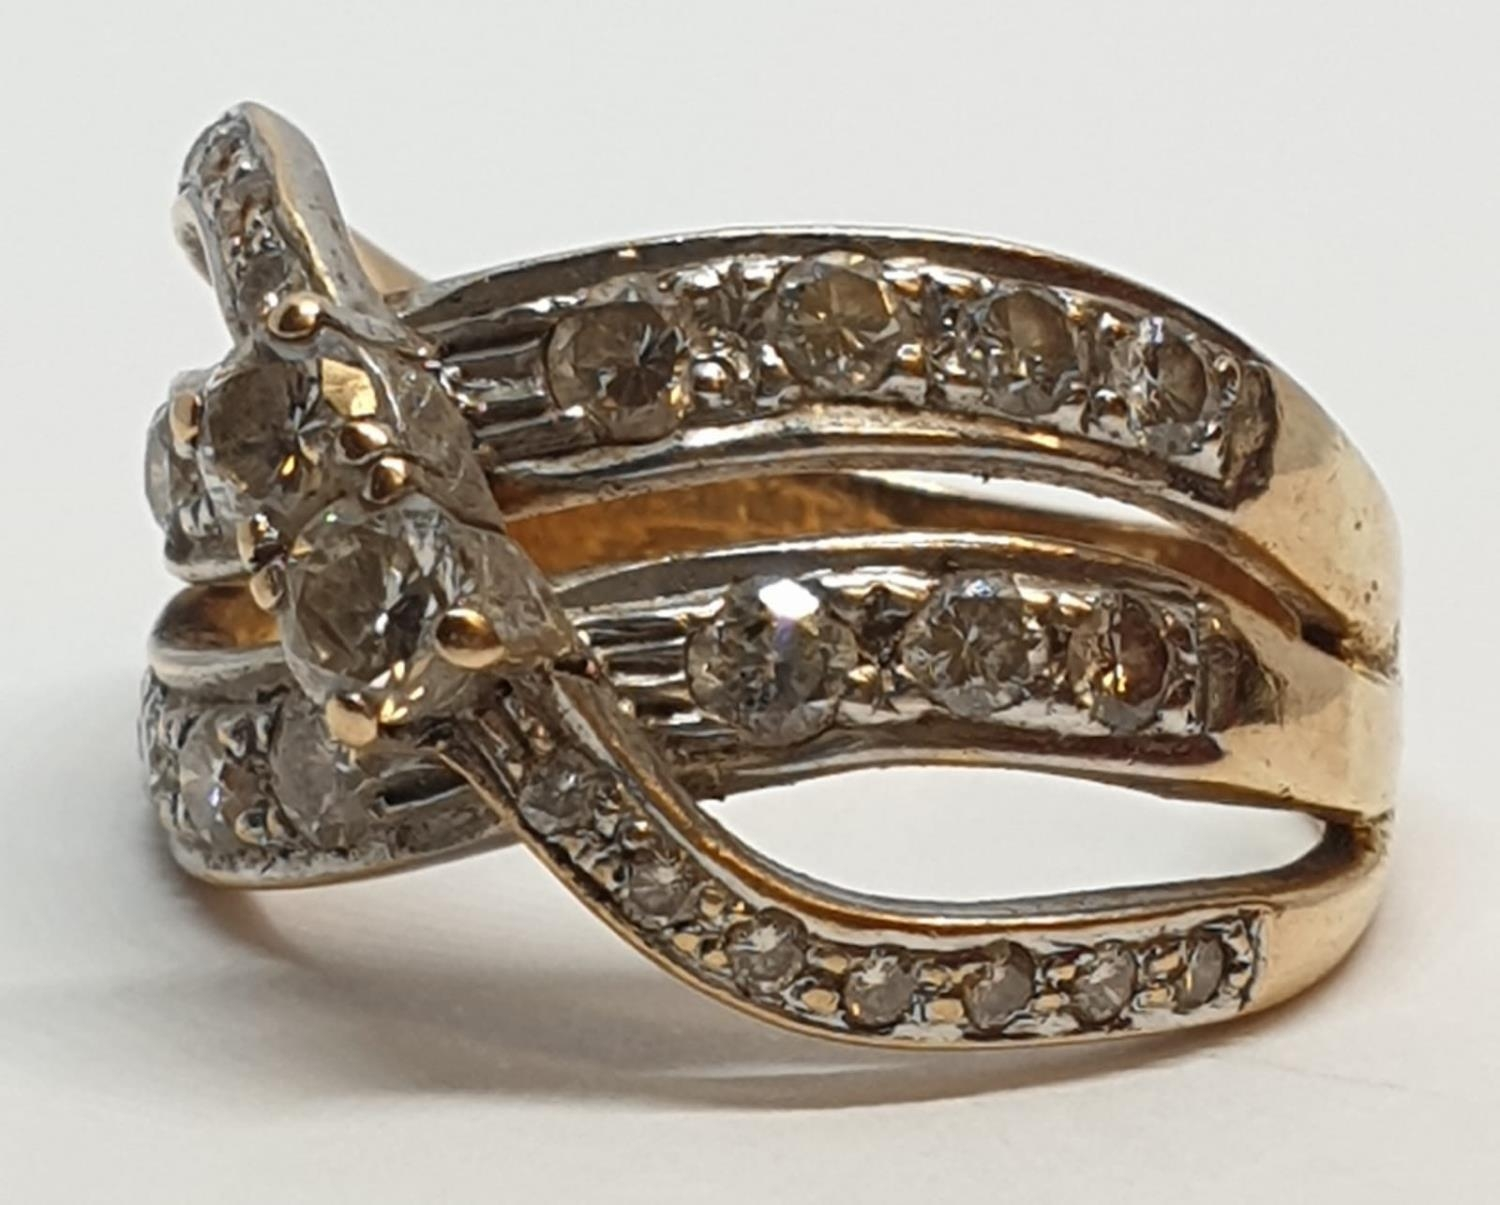 18ct Yellow gold diamond set fancy three row twist band ring. Weight 8.5g, Approx. 0.60ct of - Image 7 of 14